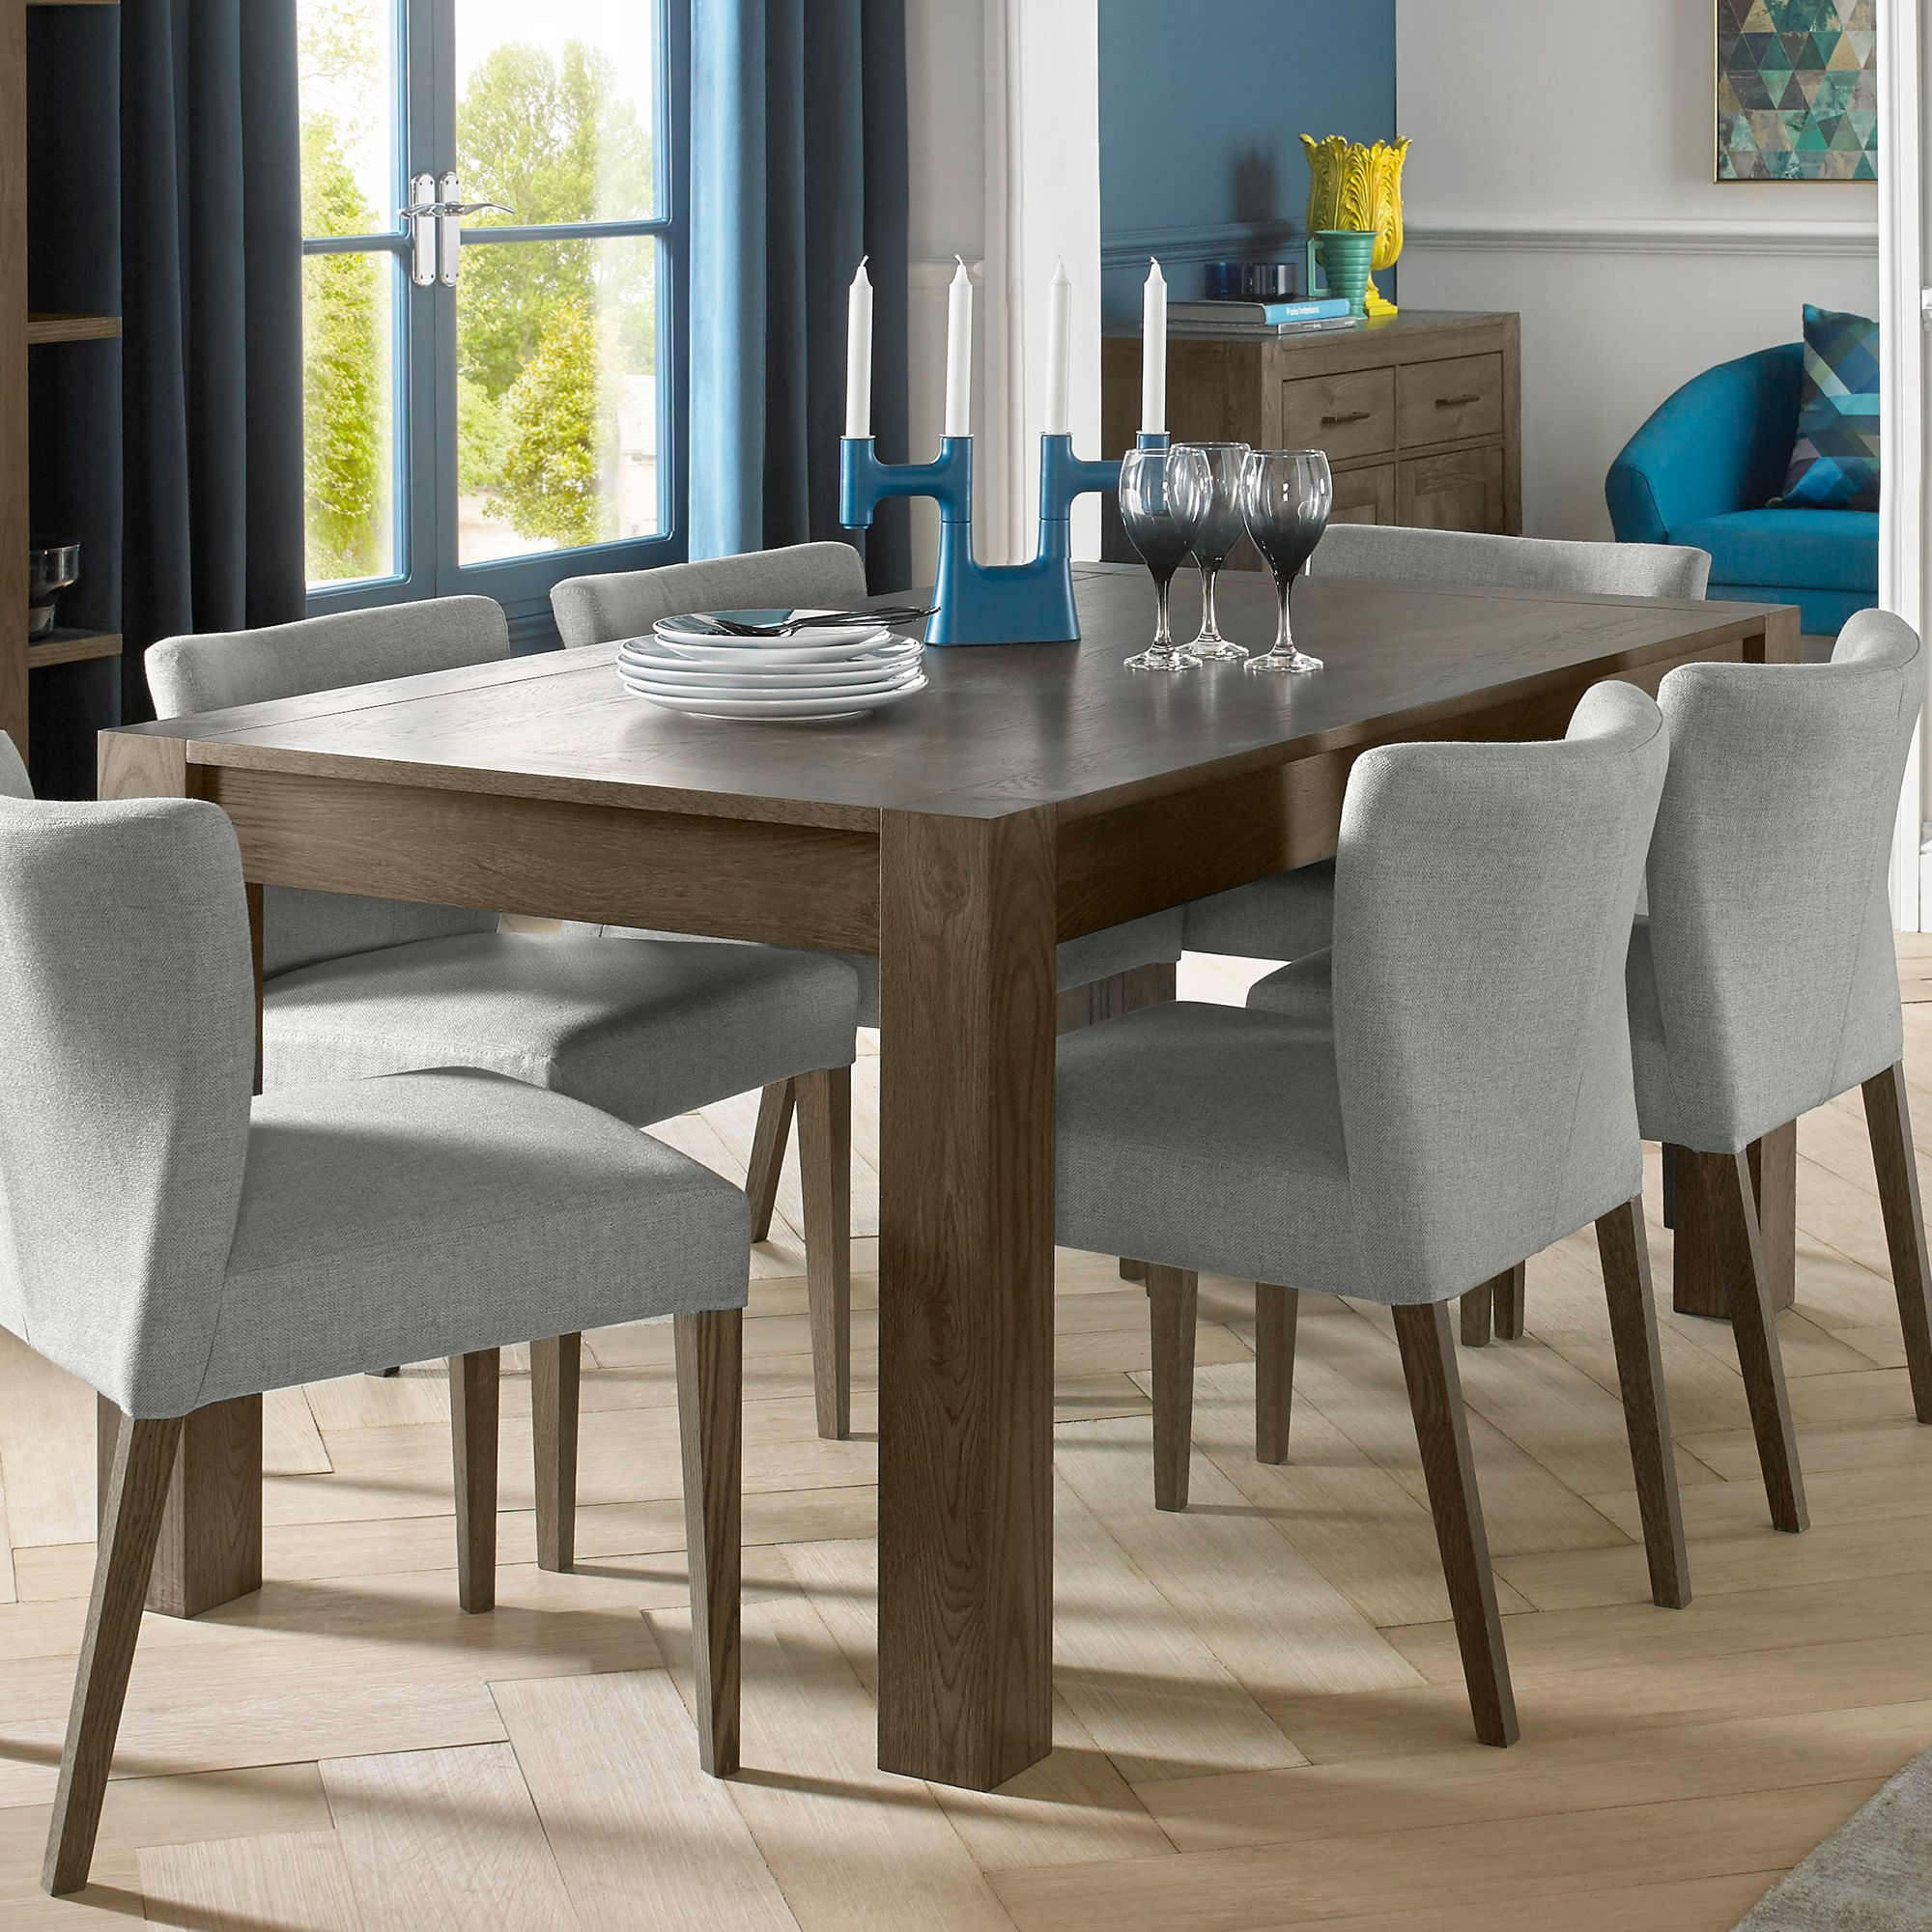 Dark Oak Dining Table With Upholstered Chairs With A Dark Oak Frame Home Homedecor Interiordecor Inte Low Back Dining Chairs Oak Dining Table Dining Table